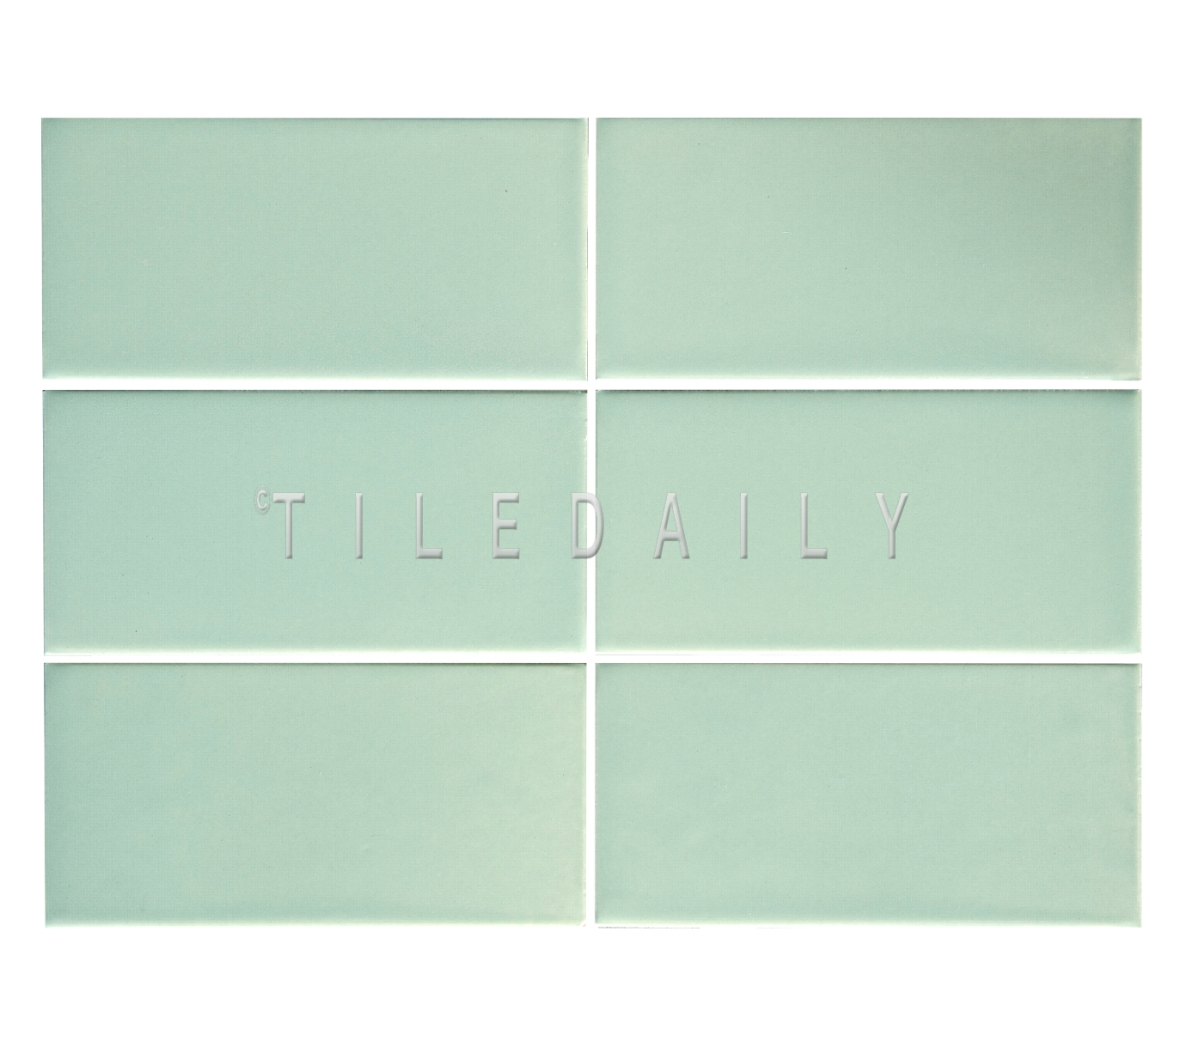 3x6 Cottage Series Ceramic Subway Tile, Mint Green. Available at TileDaily